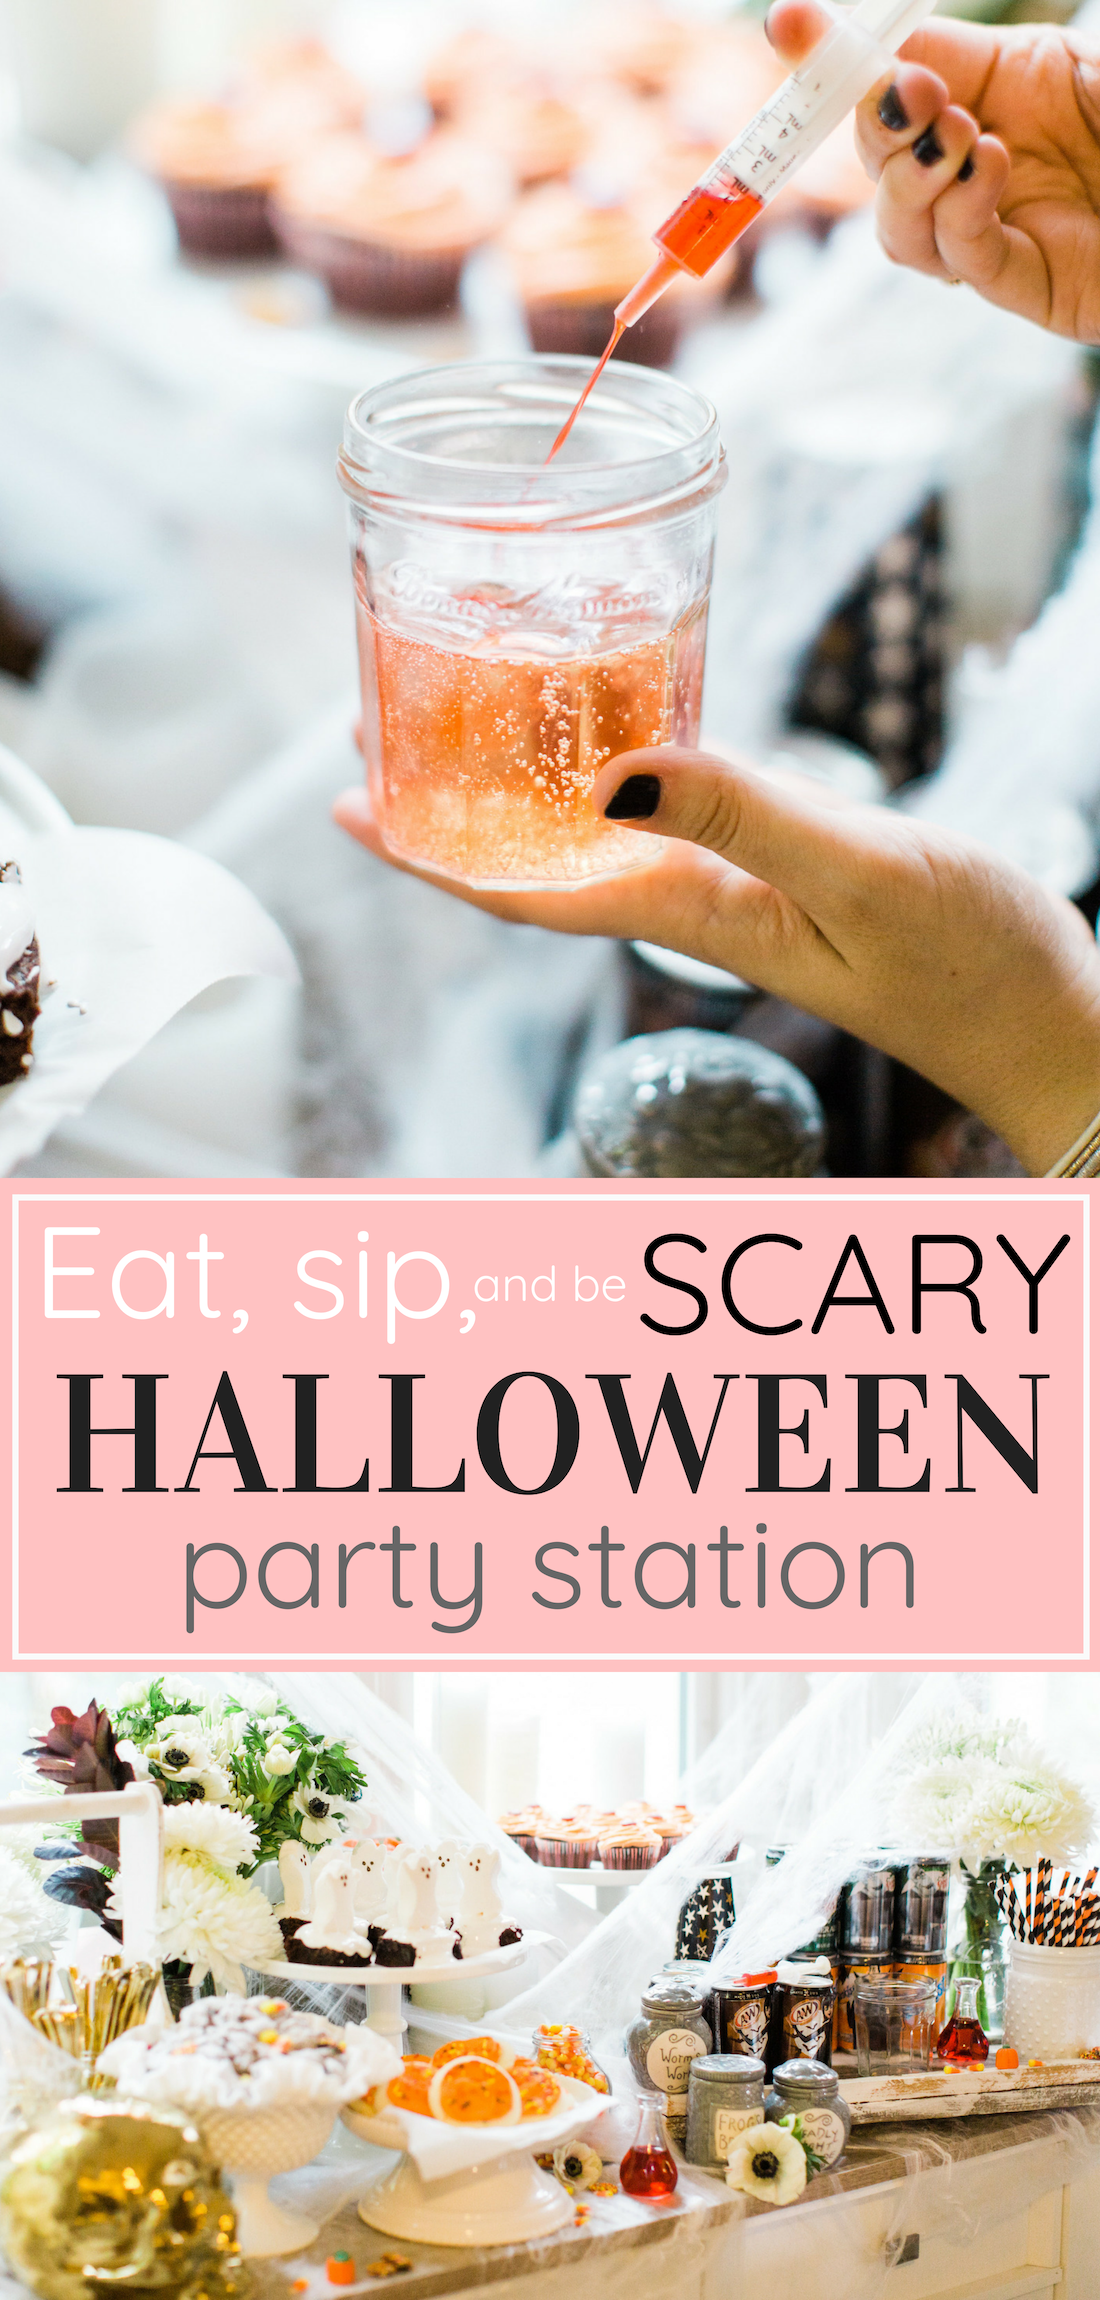 Create your own spooky Eat, Sip, and Be Scary Halloween Party Station for your next haunted bash! #Halloween #HalloweenParty #HalloweenDecor #halloweencandy #halloweendessert #dessertstation Click through for the scary fun details. | glitterinc.com | @glitterinc